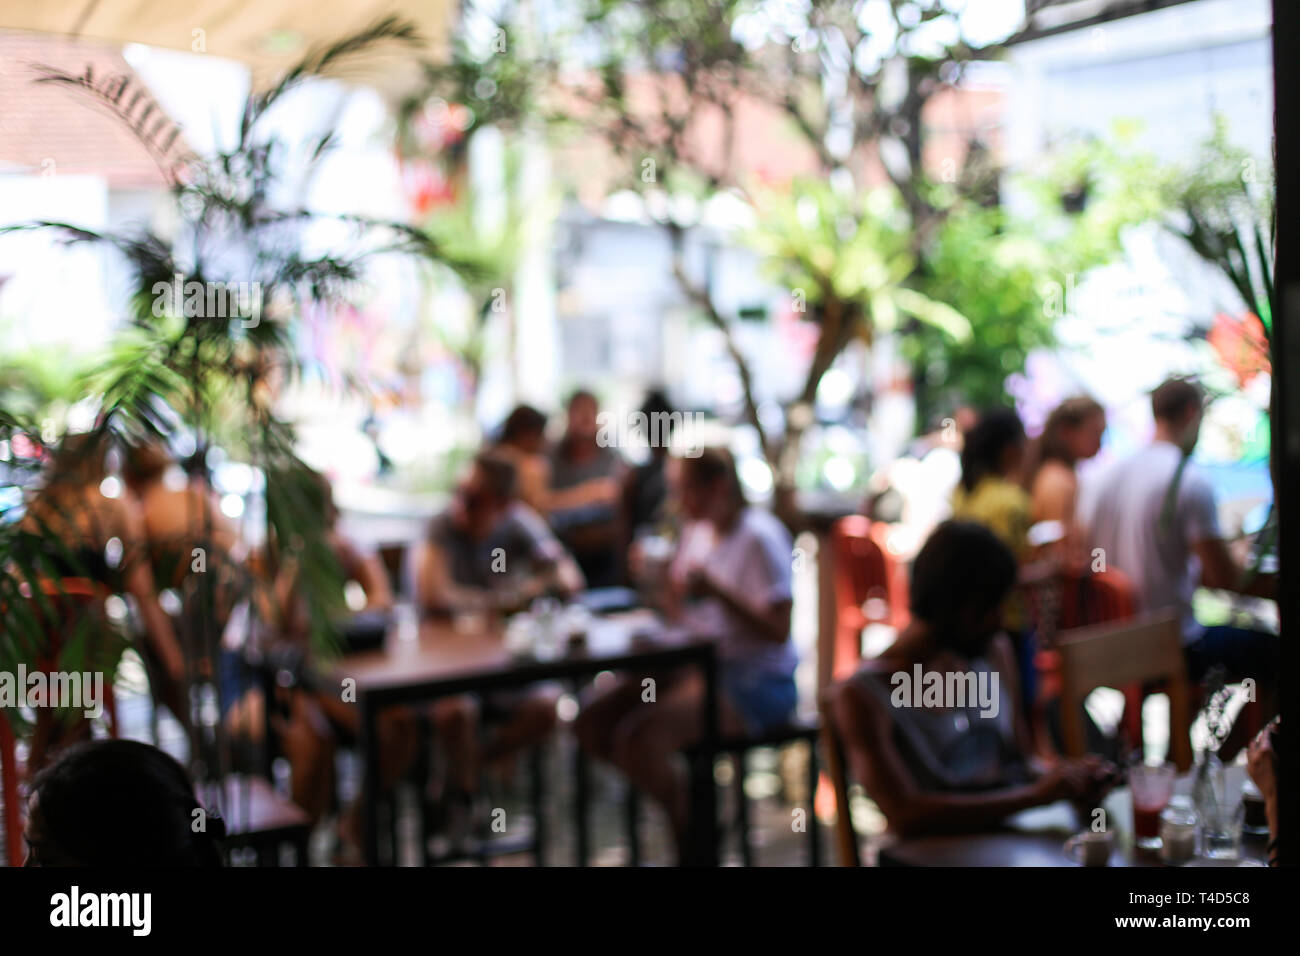 Blurred Background Of People Who Is Visitig Cafe Morning Concept Stock Photo Alamy